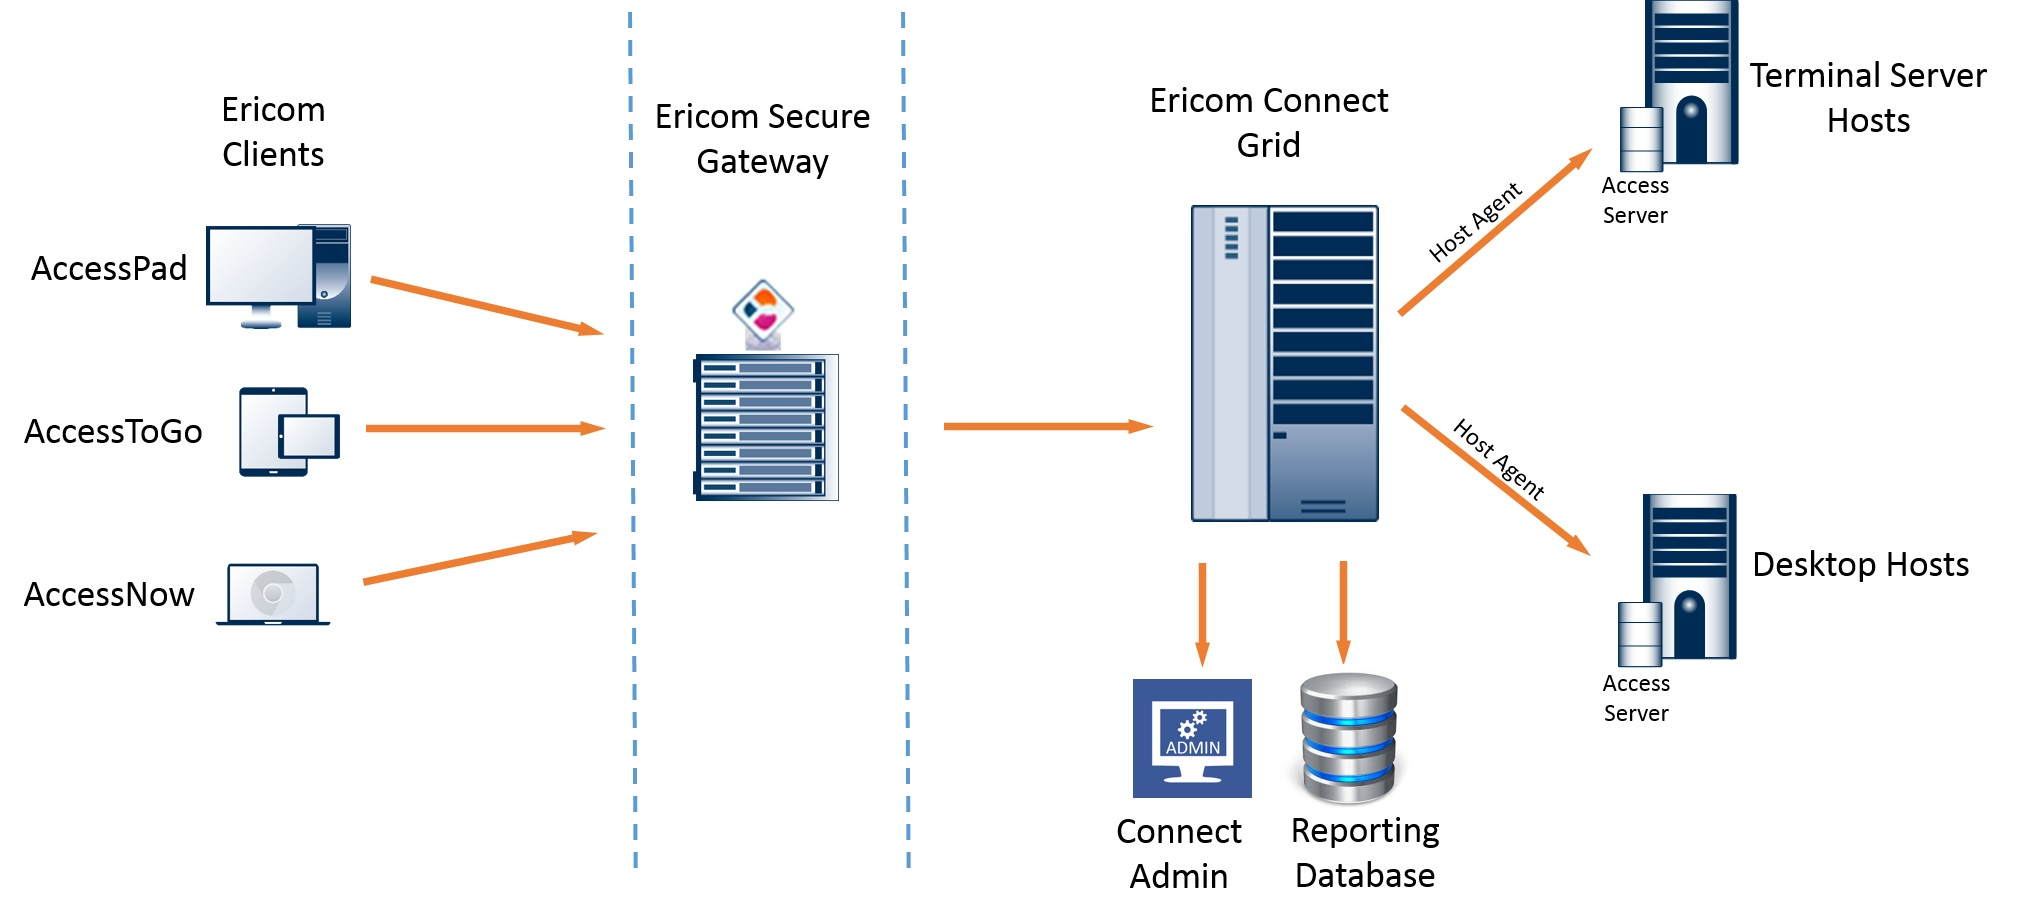 Ericom Connect Logical Architecture